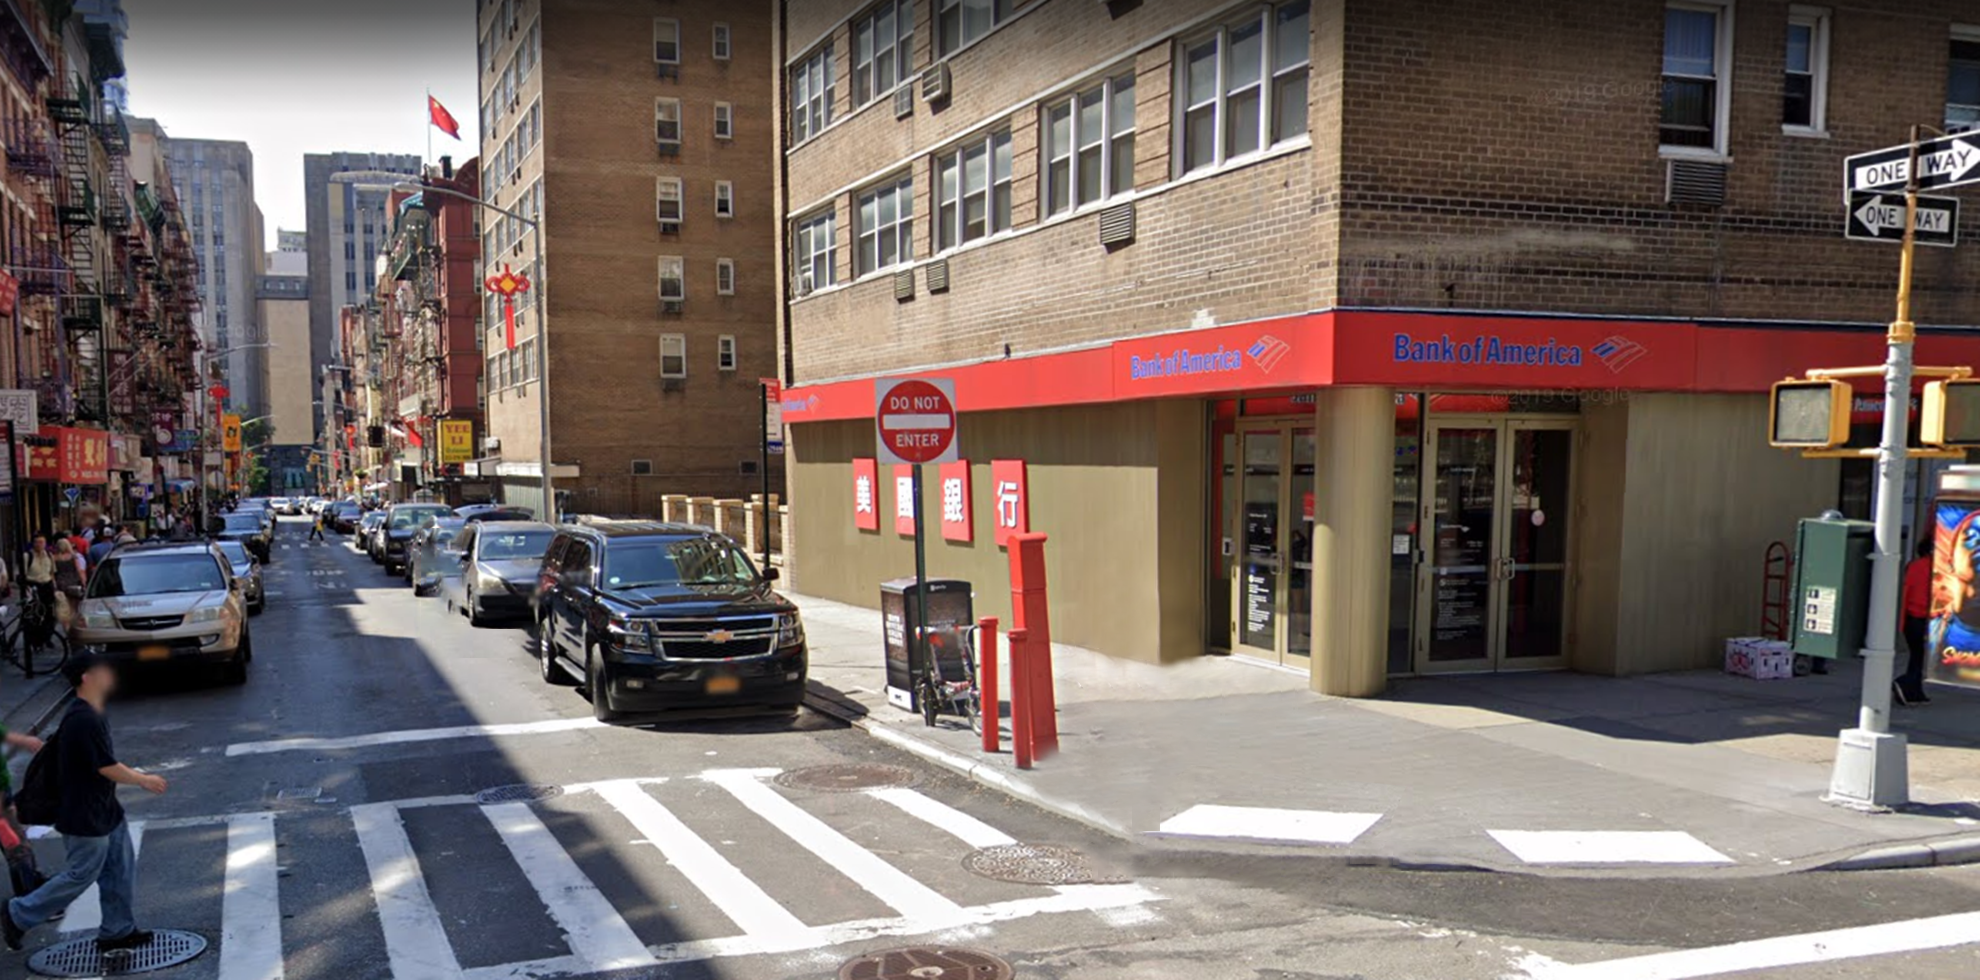 Bank of America financial center with walk-up ATM | 50 Bayard St, New York, NY 10013